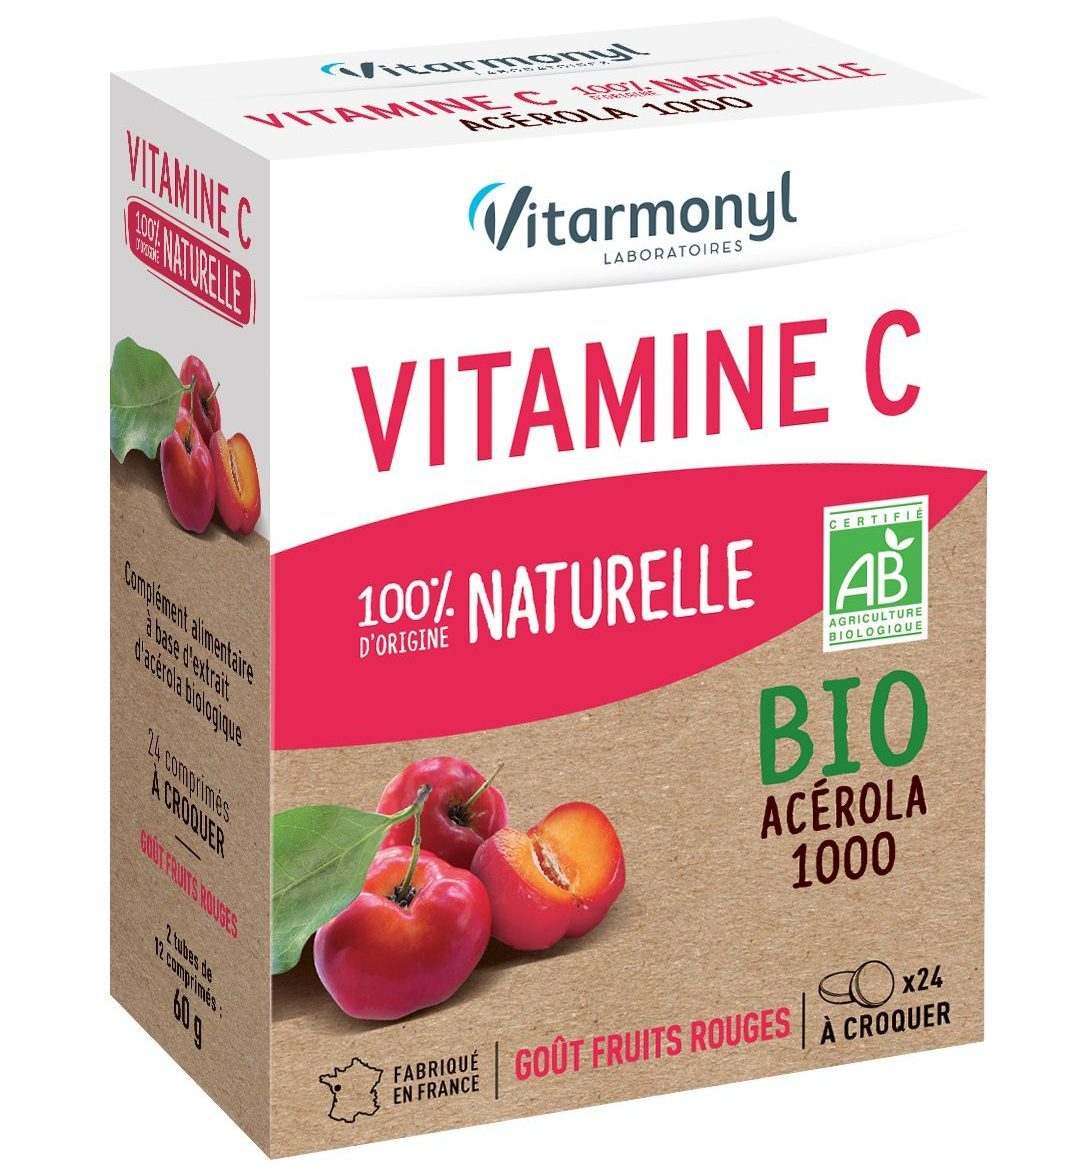 Vitamine C 100% d'origine naturelle BIO